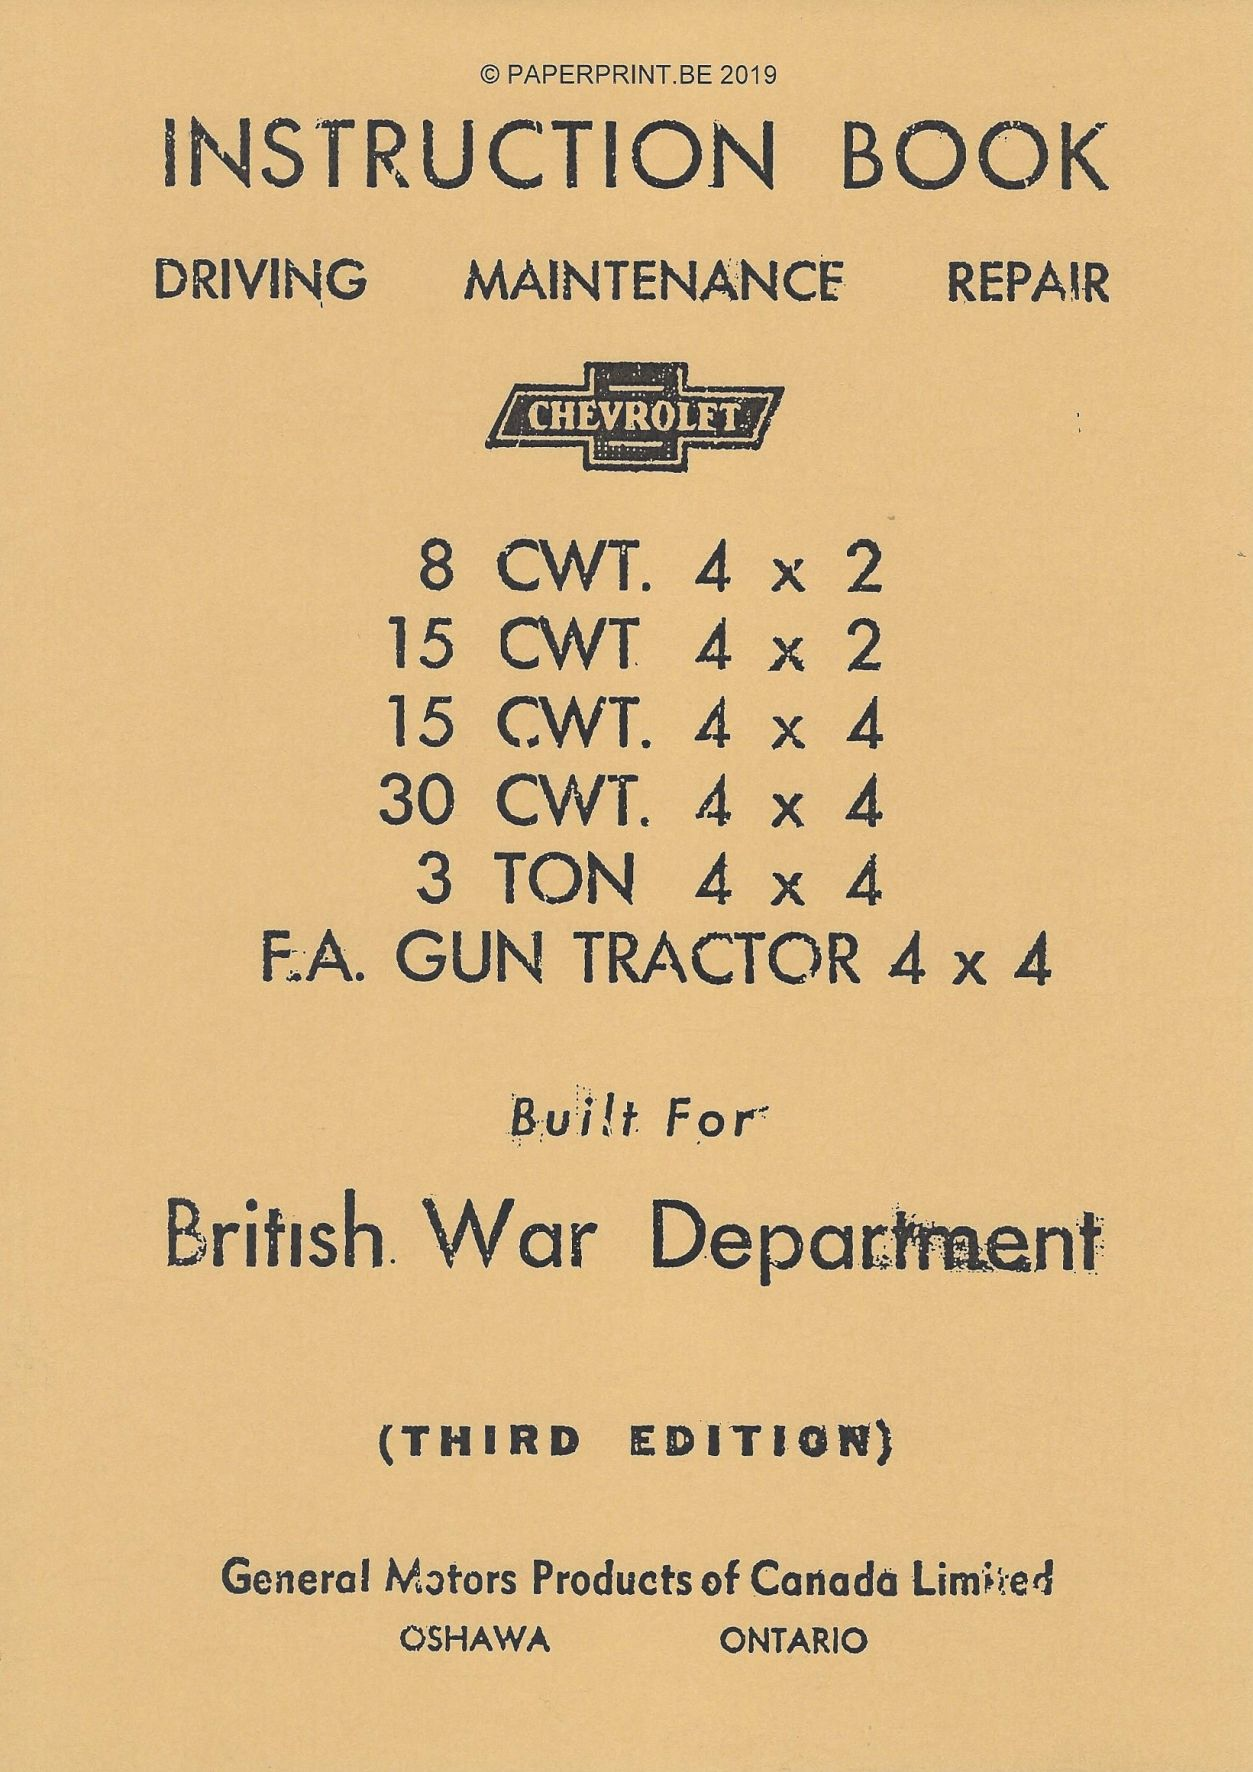 INSTRUCTION BOOK CHEVROLET CWT